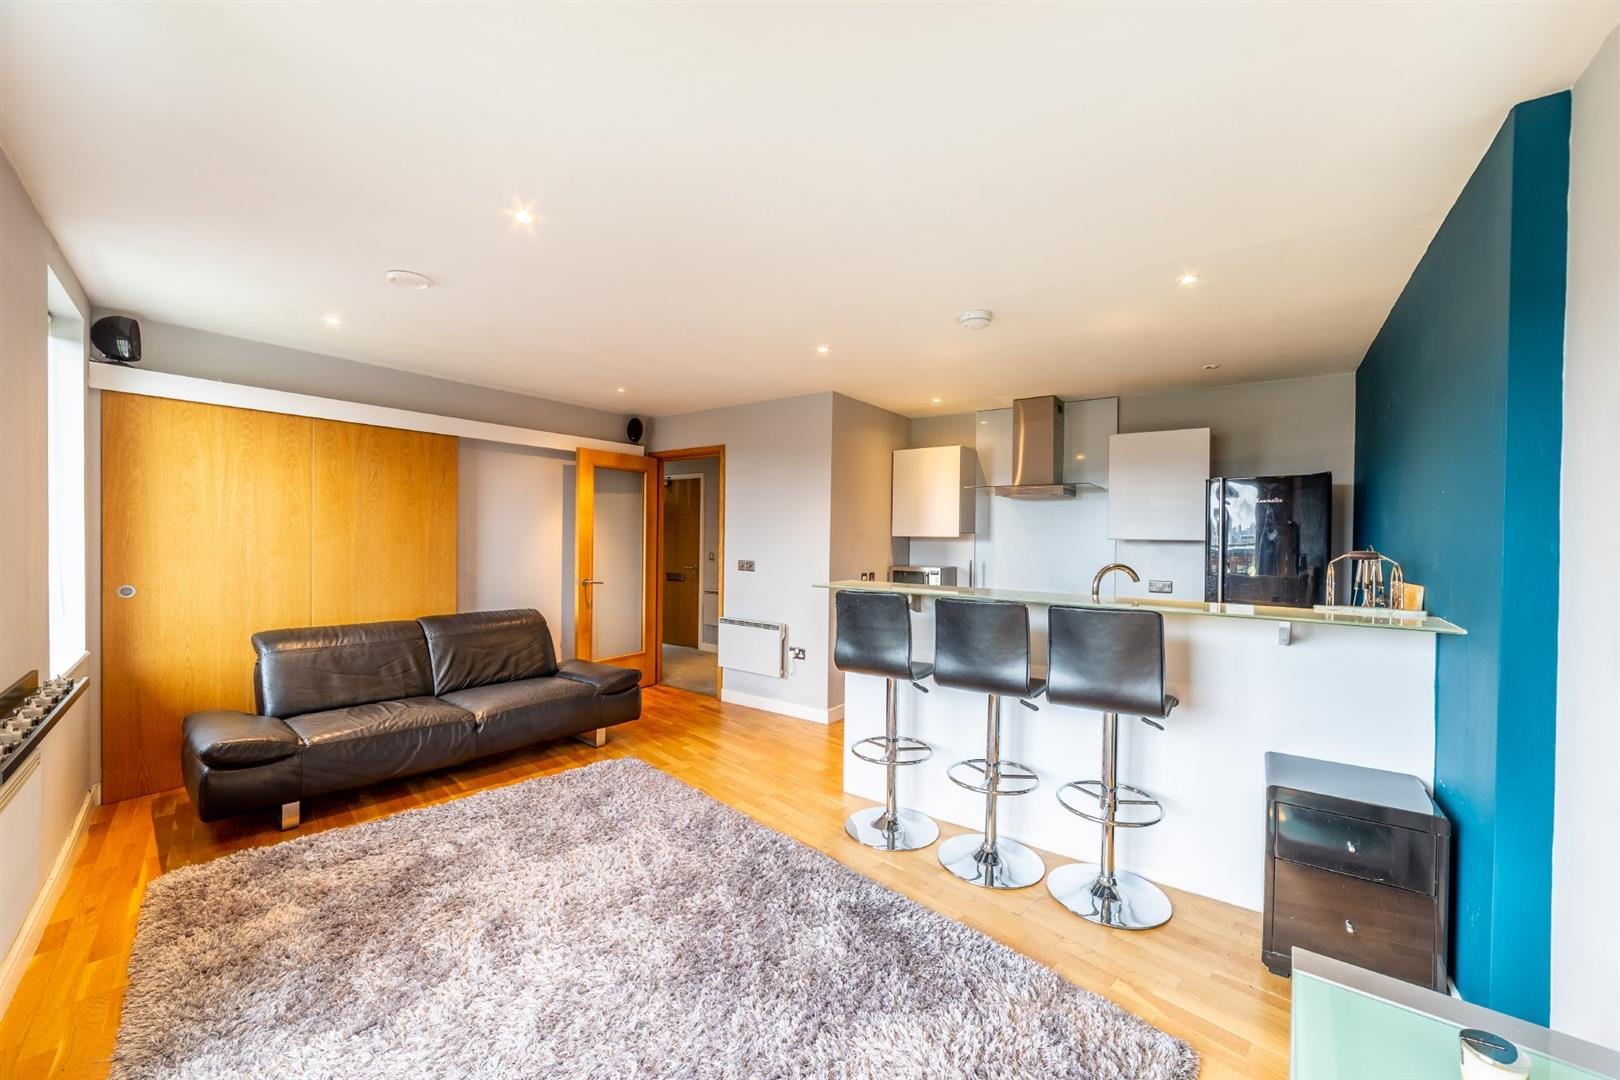 2 bed penthouse for sale in Newcastle Upon Tyne, NE1 3BB 3